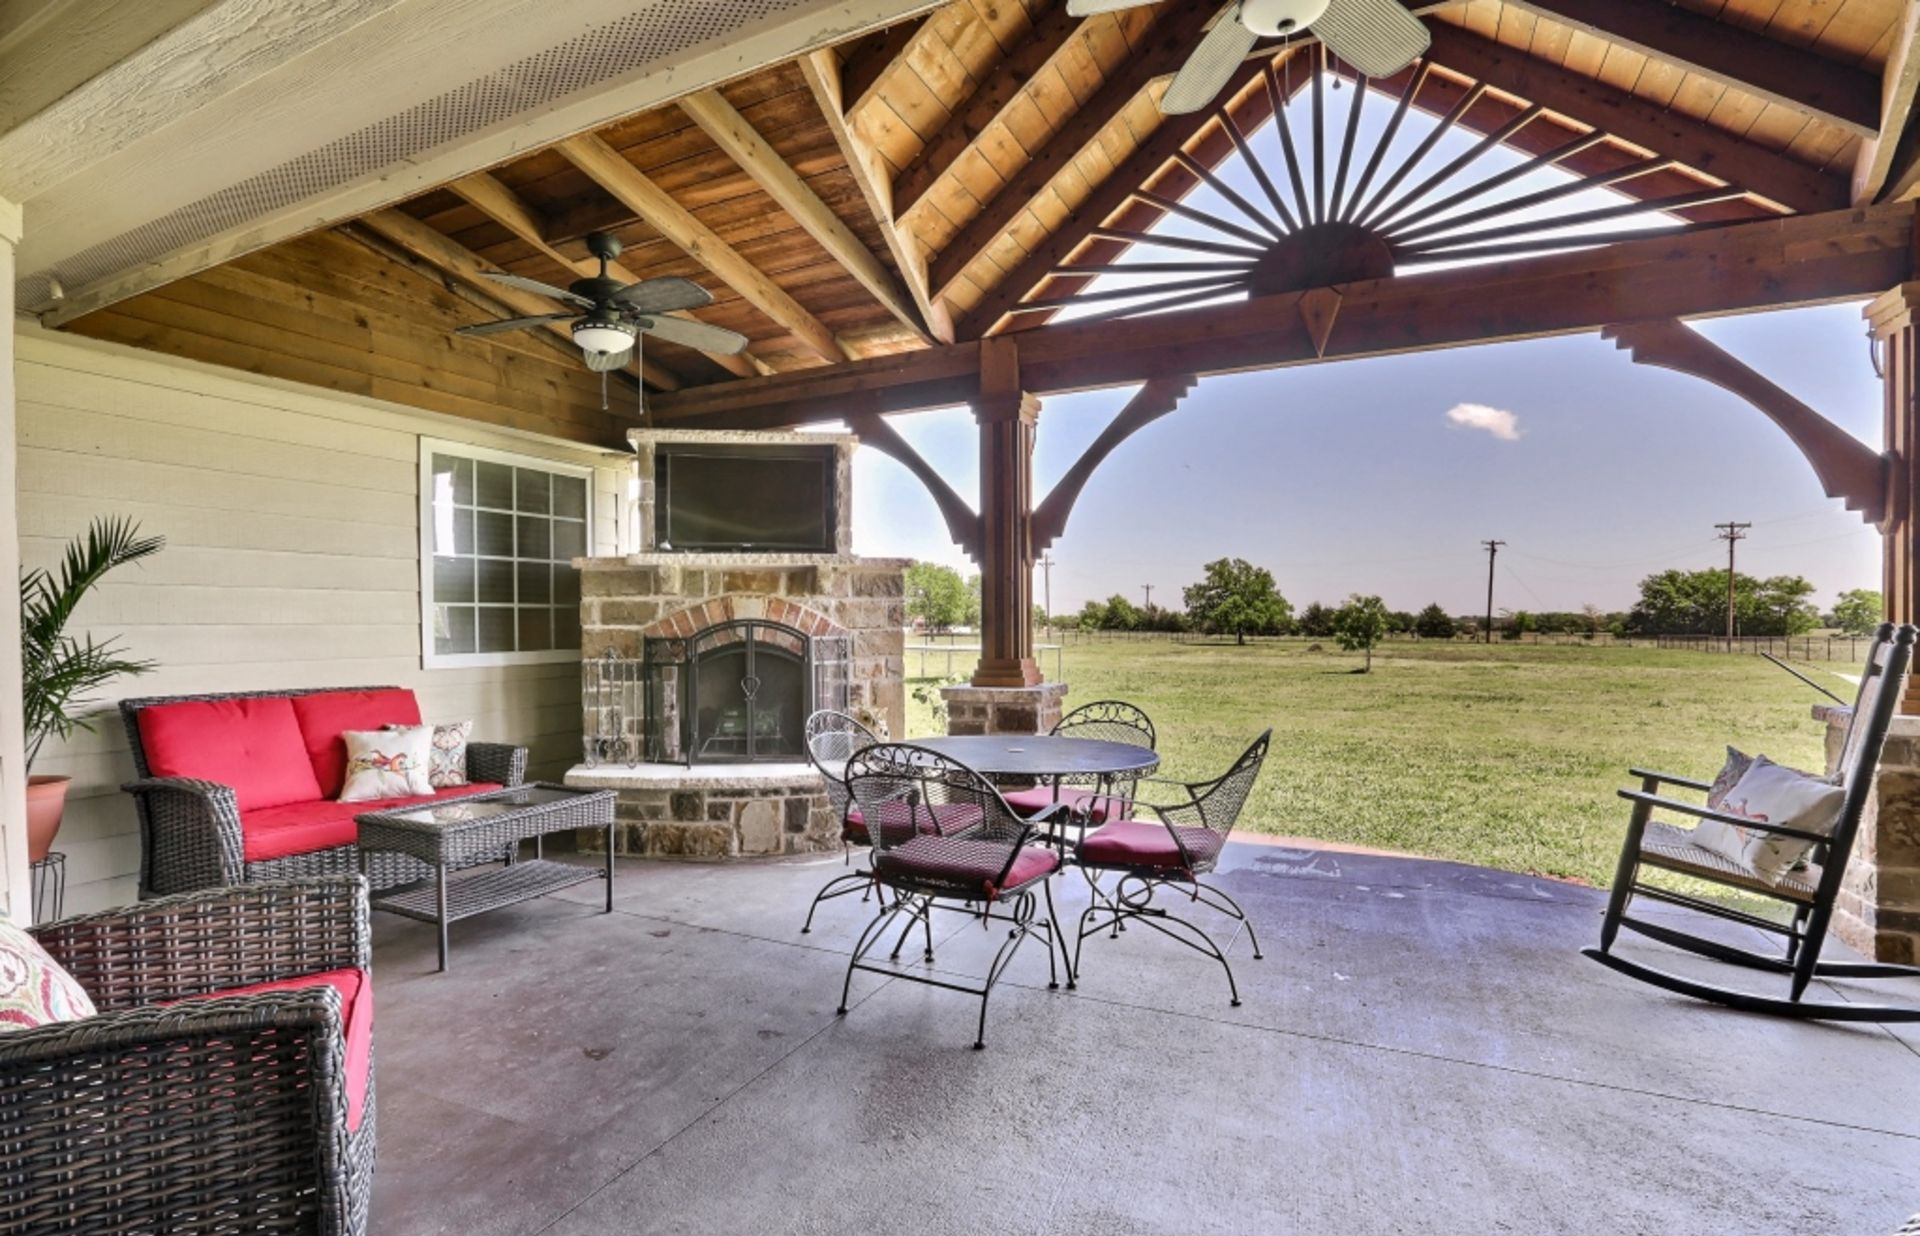 BEAUTIFUL HOME FOR SALE IN CADDO MILLS TEXAS